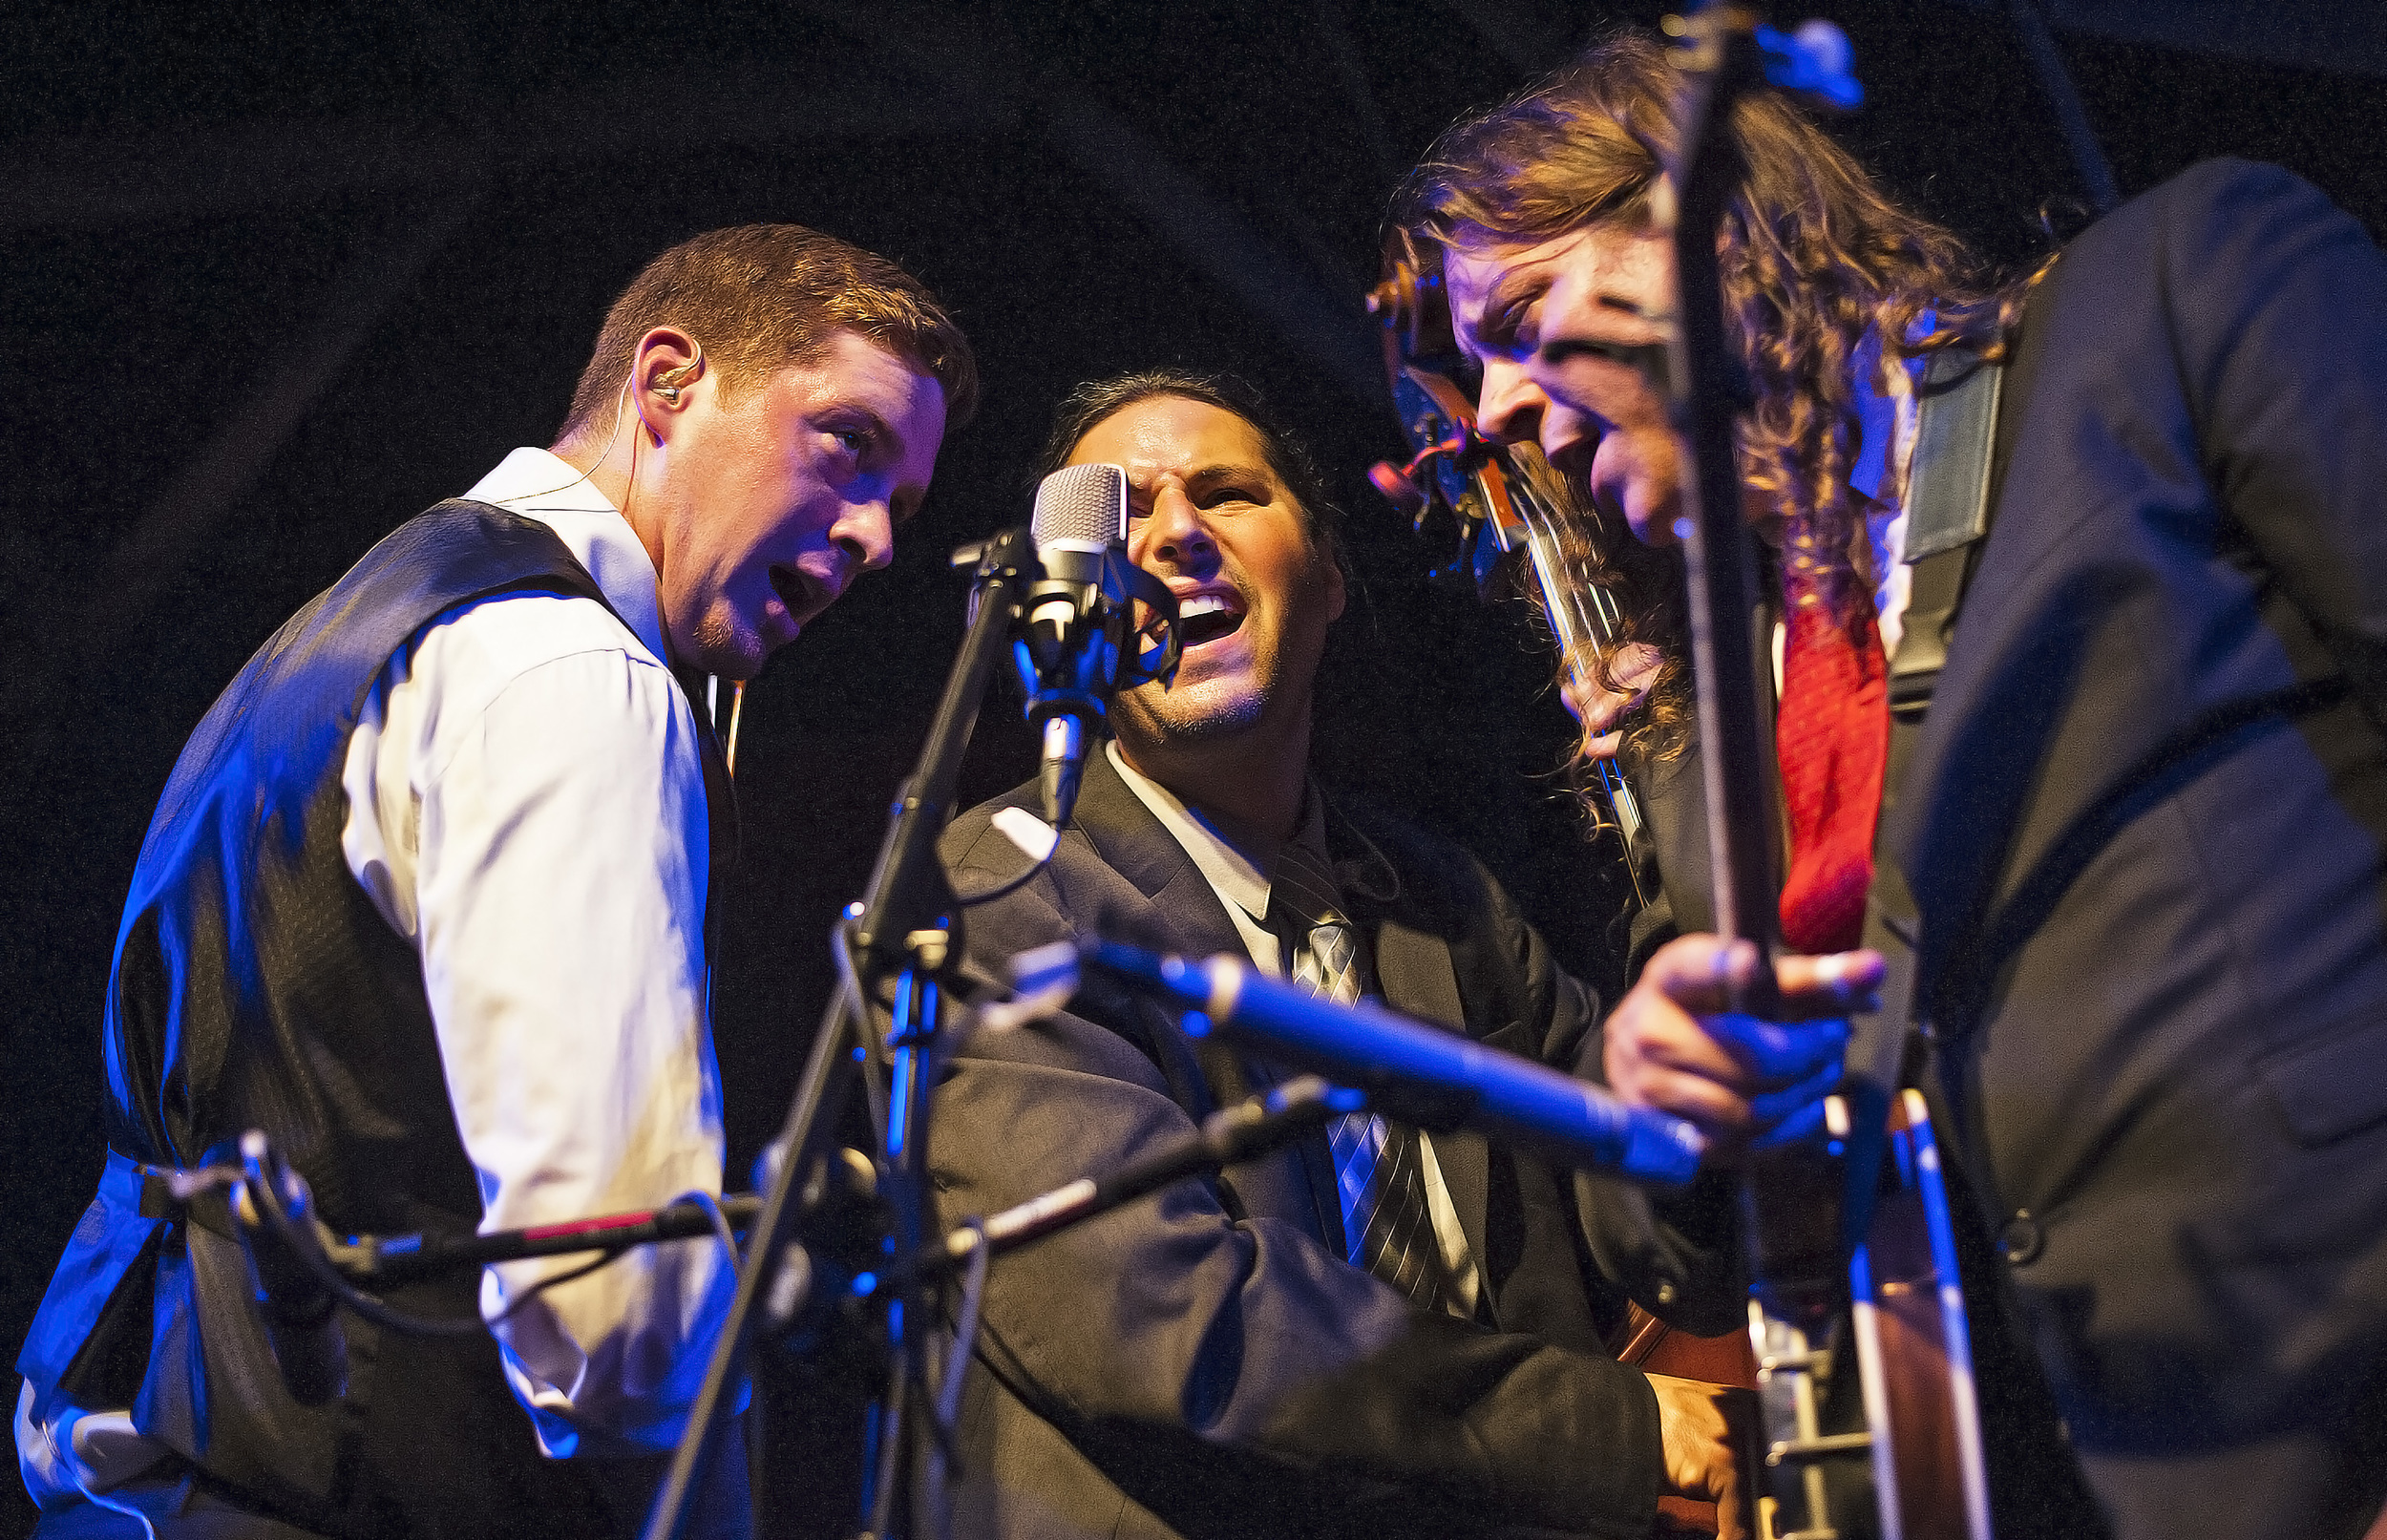 Dan Andree, left, Jon Goldfine, center, and Ben Wright, of Henhouse Prowlers, perform at Hangar 9 on Sept. 27. The band, of Chicago, has been playing bluegrass music for more than 10 years.